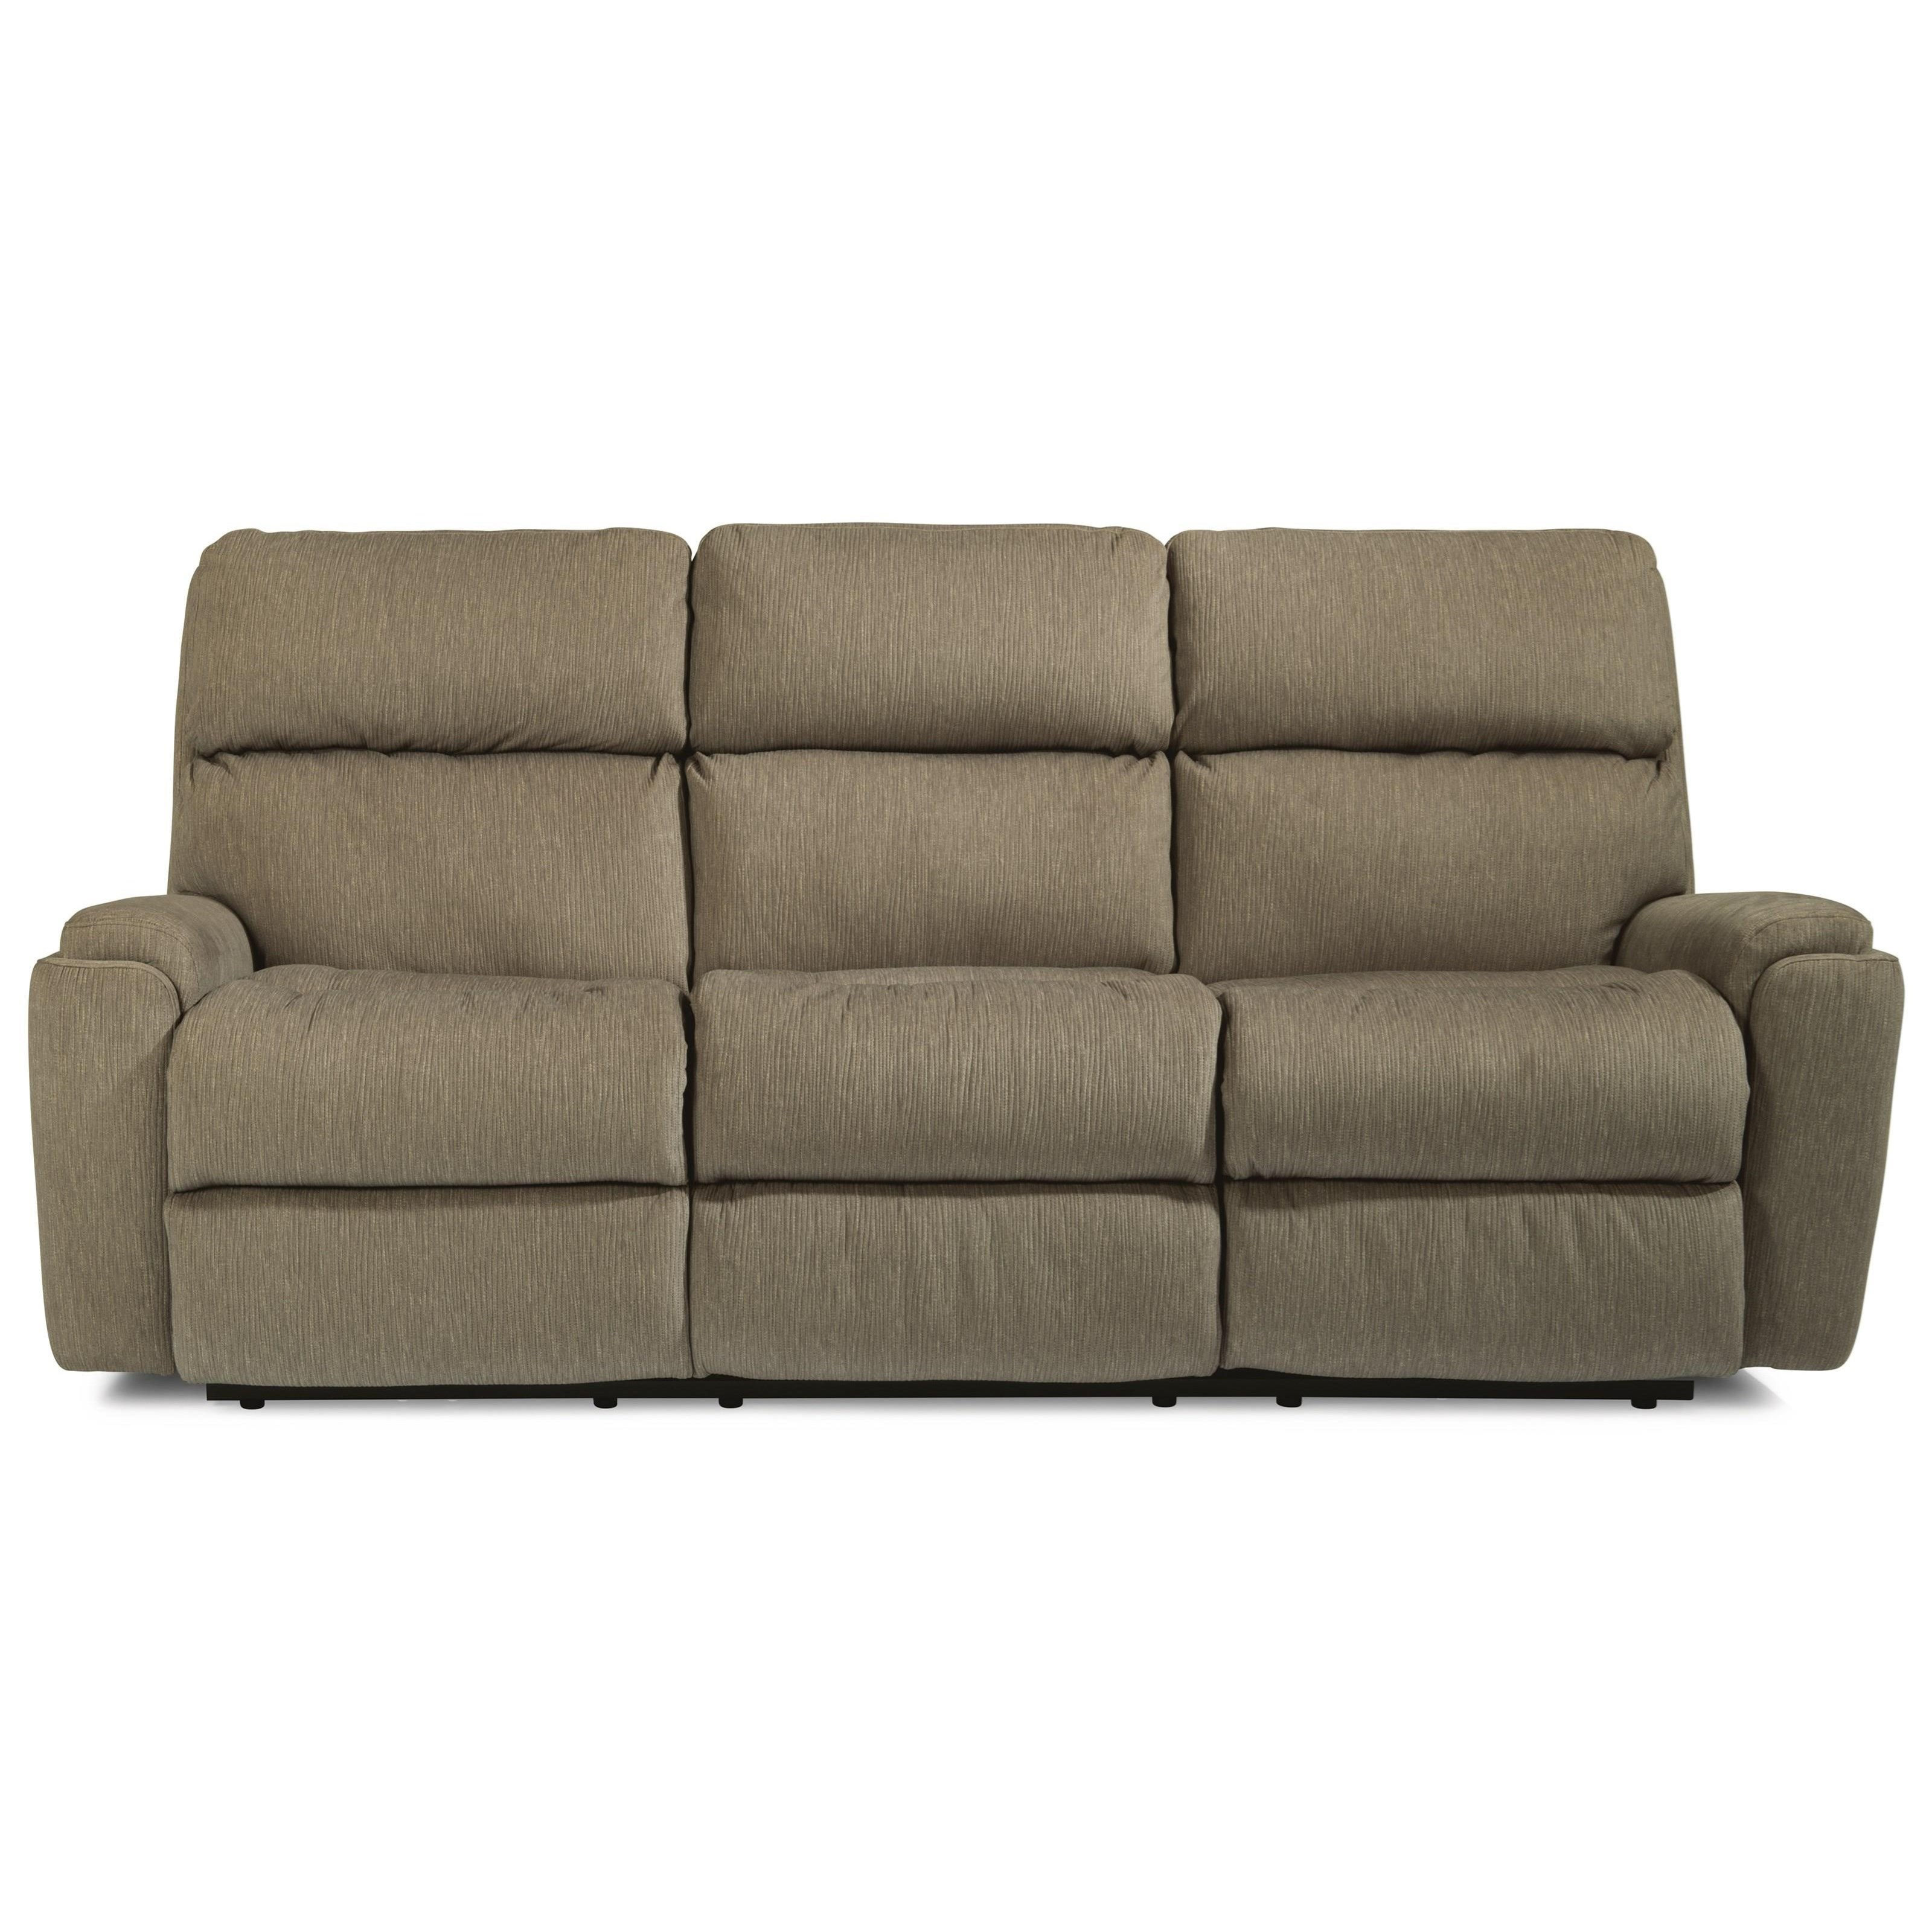 Rio Power Reclining Sofa with Power Headrests by Flexsteel at Turk Furniture